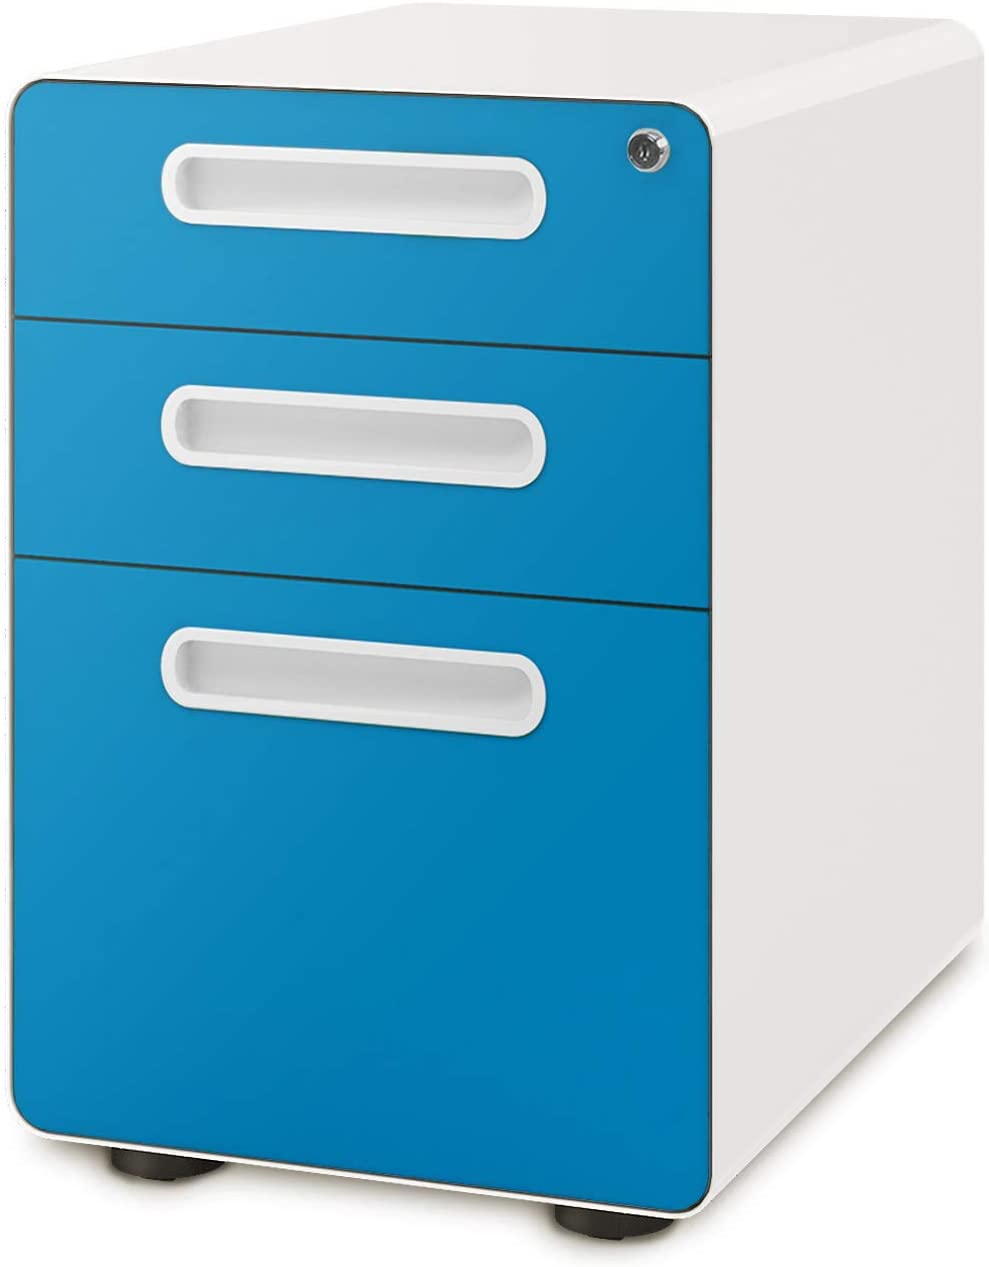 DEVAISE 3-Drawer Mobile File Cabinet with Anti-tilt Mechanism, Legal/Letter Size, Blue